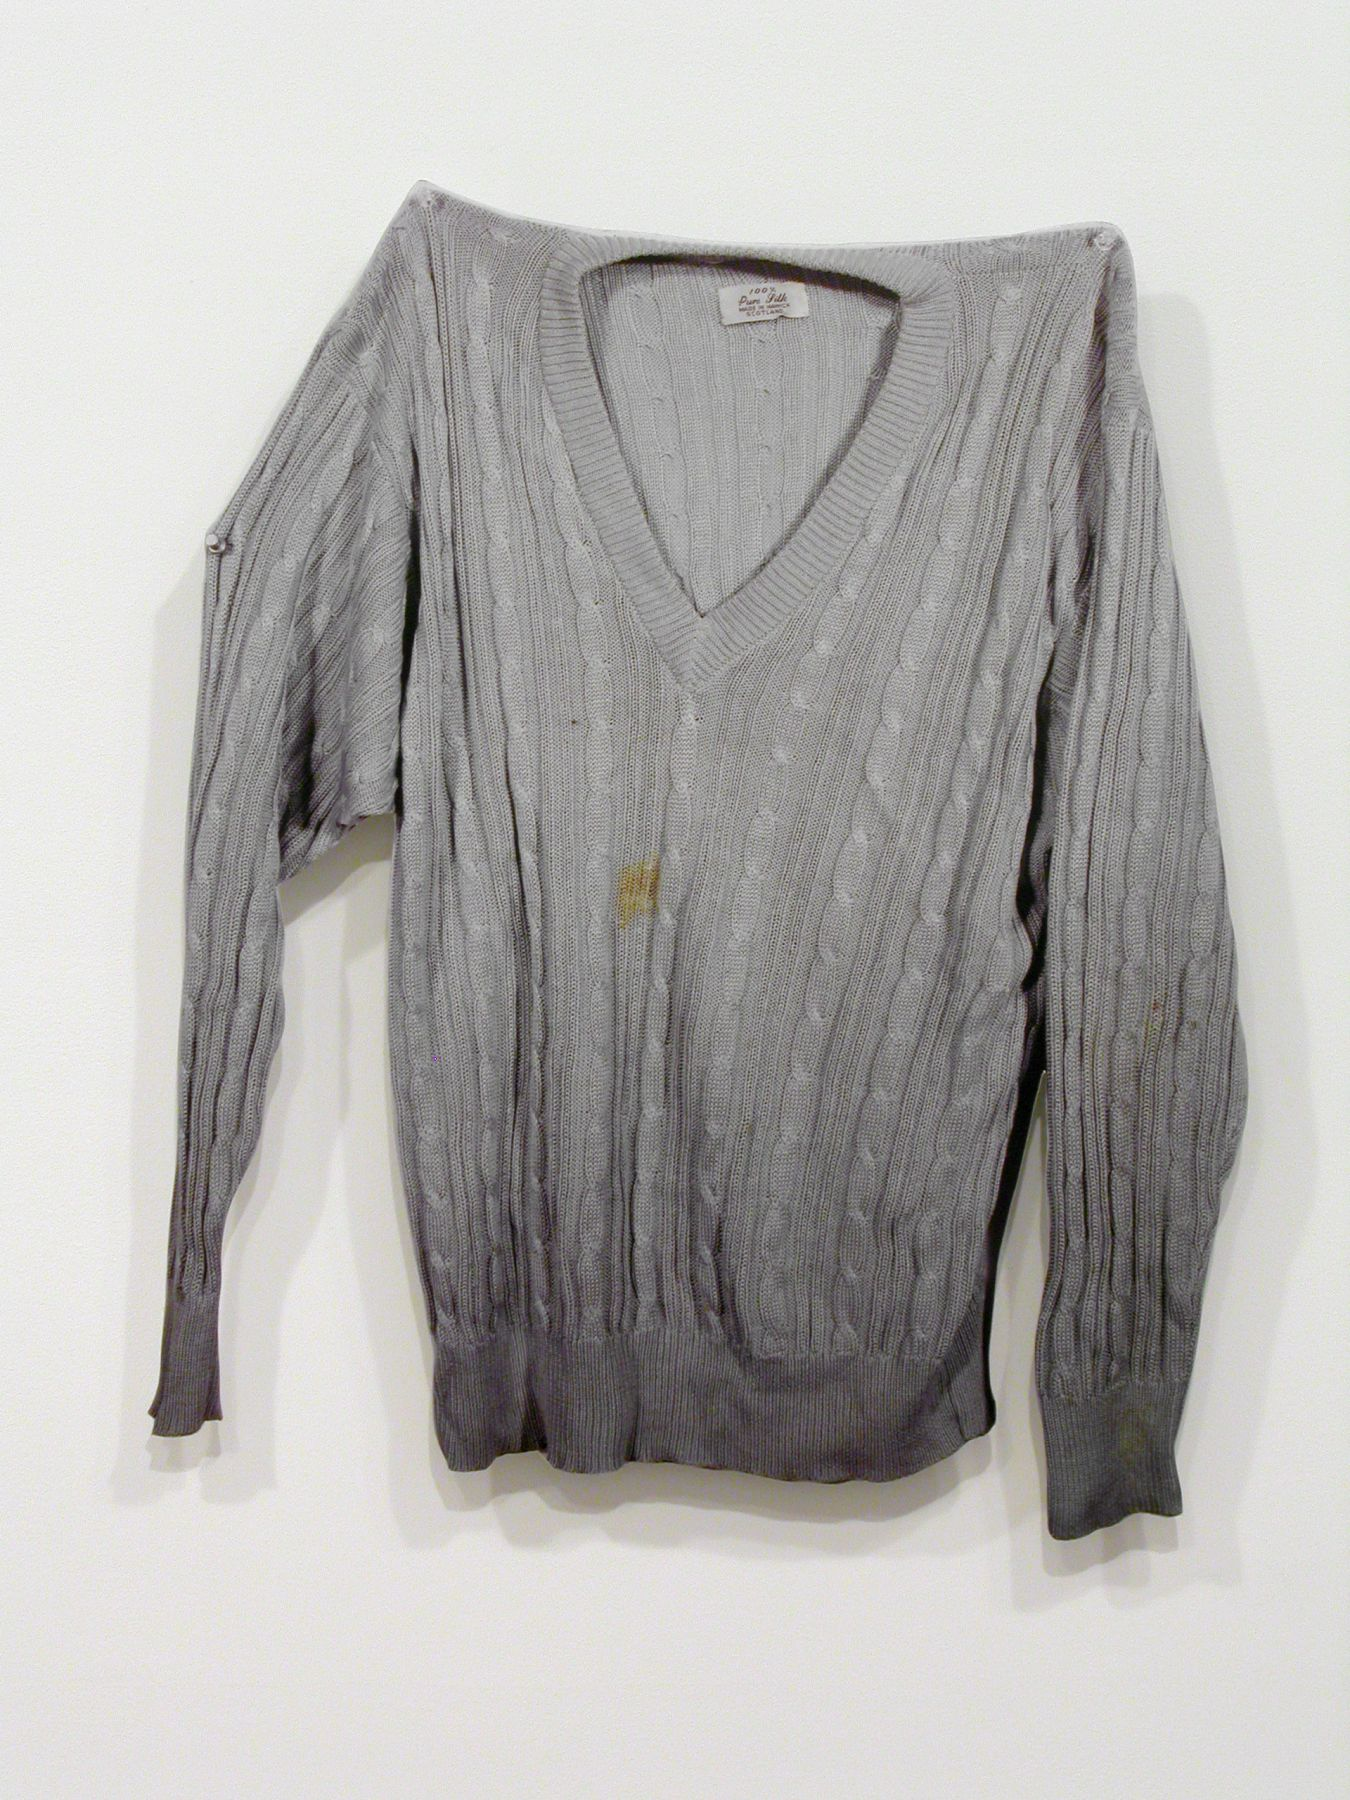 Jim Drain, Untitled (grey sweater with holes), 2007, C-print, Mounted on Aluminum, 26 1/4 x 41 x 1 inches